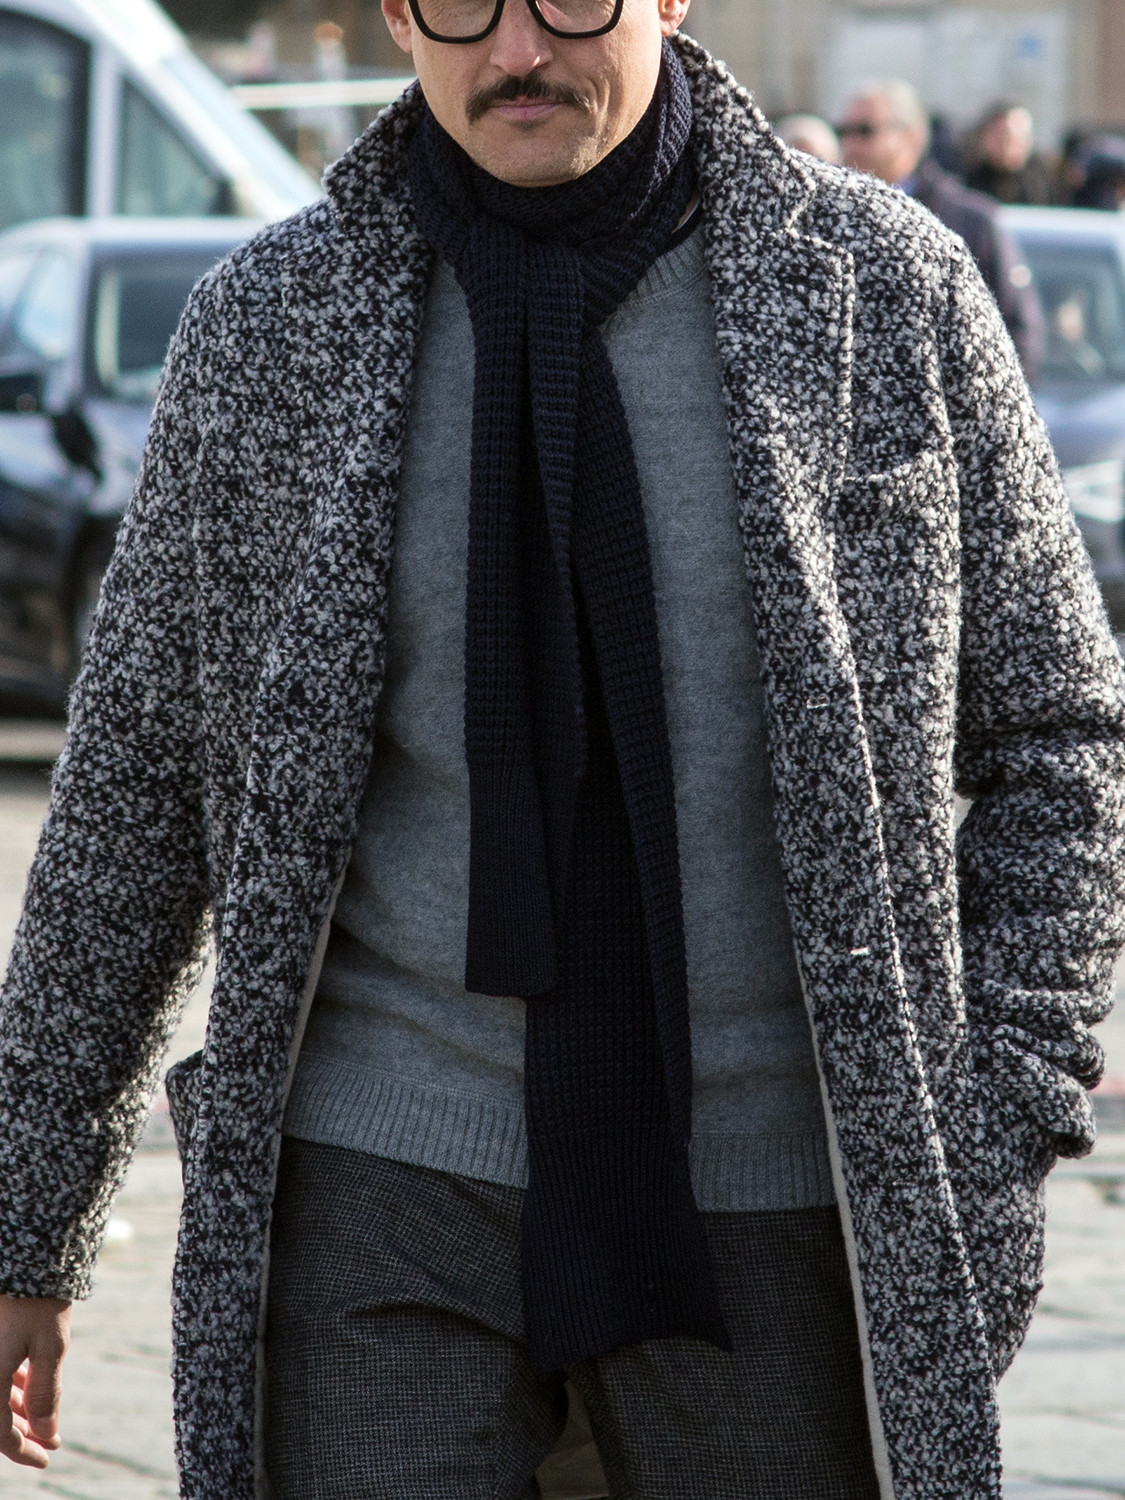 Men's outfit idea for 2021 with grey plain crew neck knitted jumper, grey patterned formal trousers, navy plain knitted scarf, black monk-strap shoes. Suitable for autumn and winter.